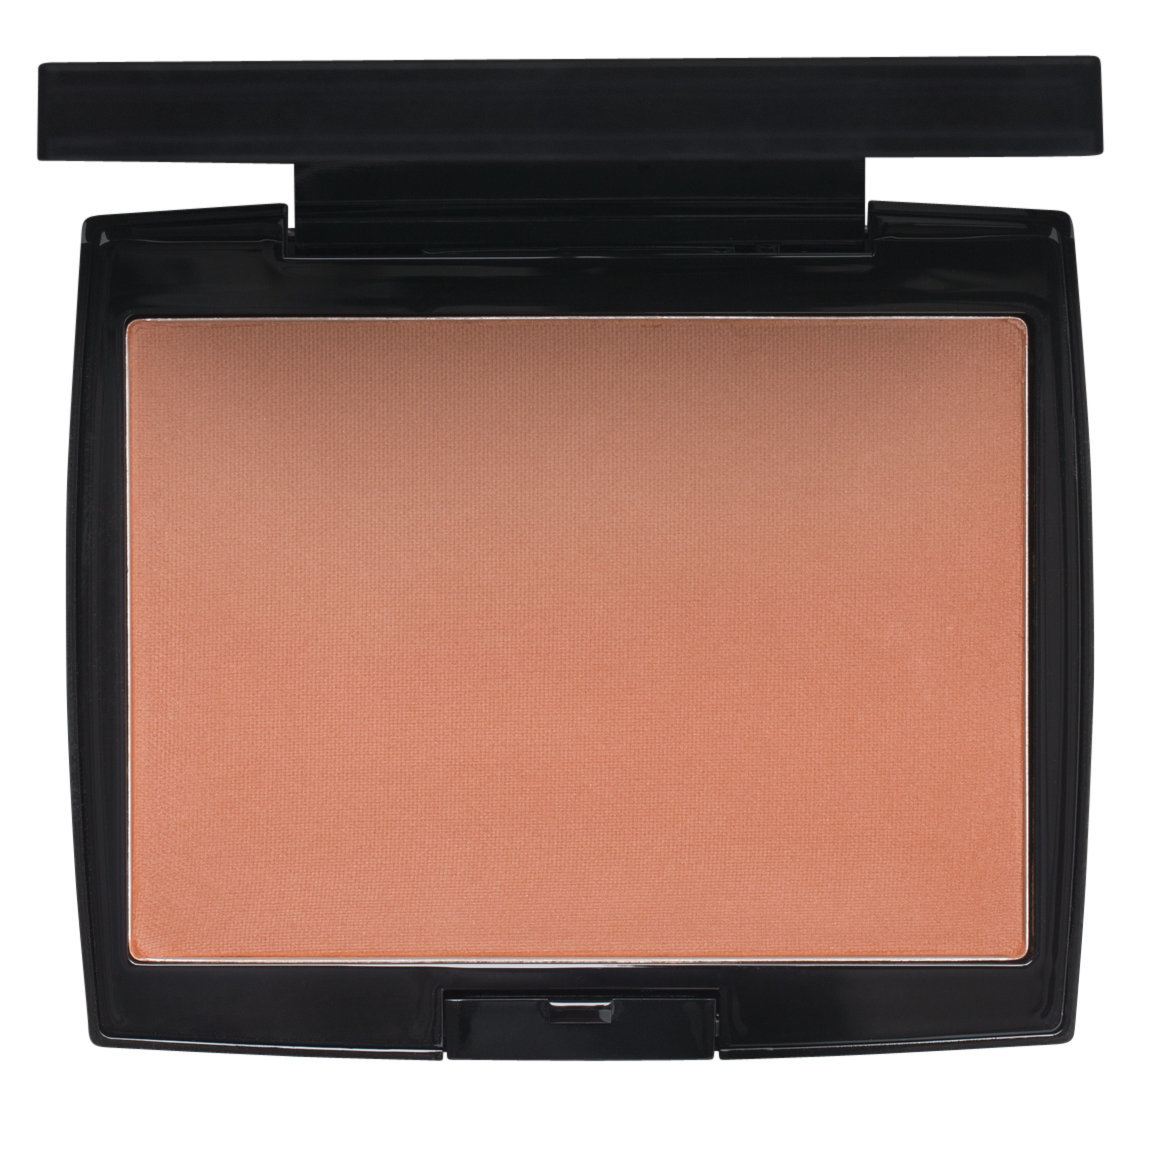 Anastasia Beverly Hills Powder Bronzer Cappucino alternative view 1 - product swatch.